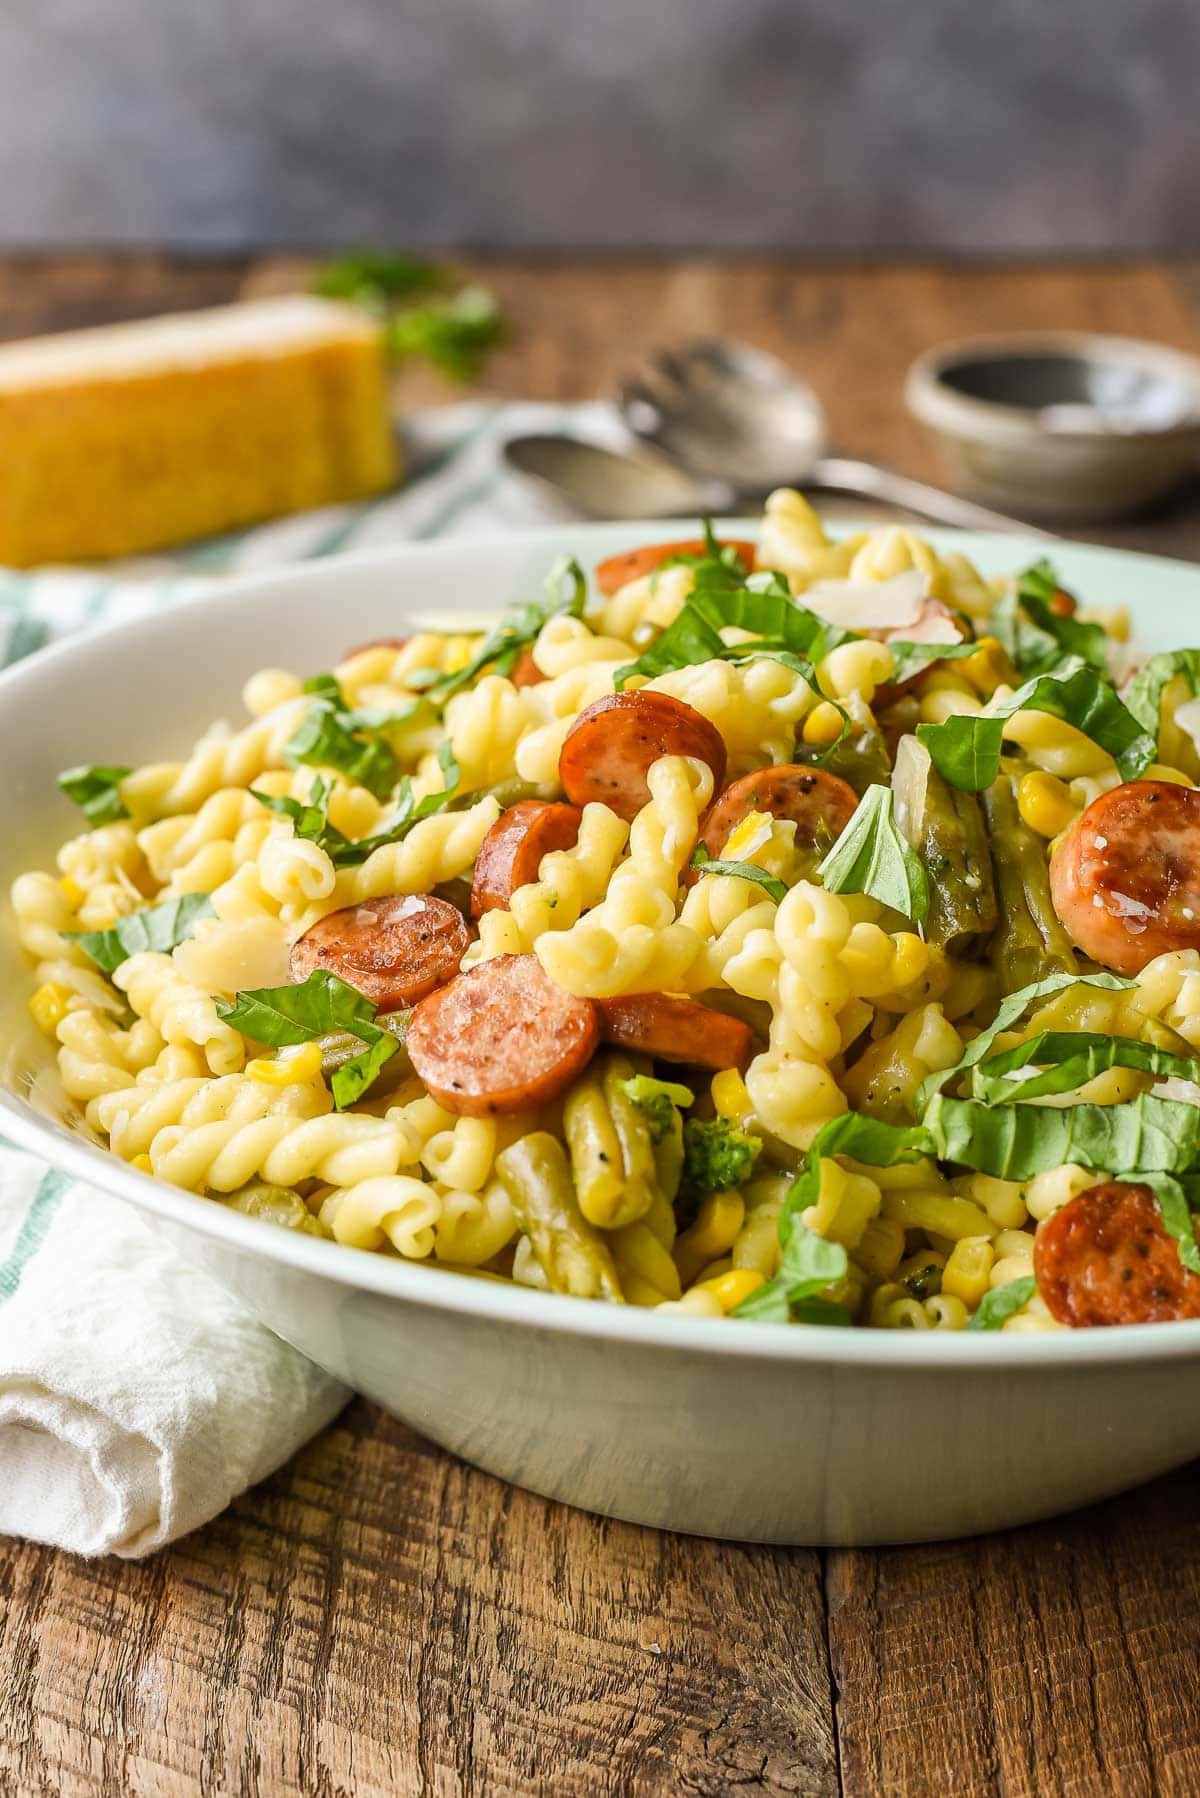 These family-friendly meals use pantry ingredients like beans, lentils, canned goods, pasta, rice, and broth, plus or minus staples that keep well in the freezer or refrigerator. These flexible recipes are all about using what you have on hand to make easy, delicious lunches and dinners! | glitterinc.com | @glitterinc // Easy Parmesan Pasta with Chicken Sausage and Canned Vegetables